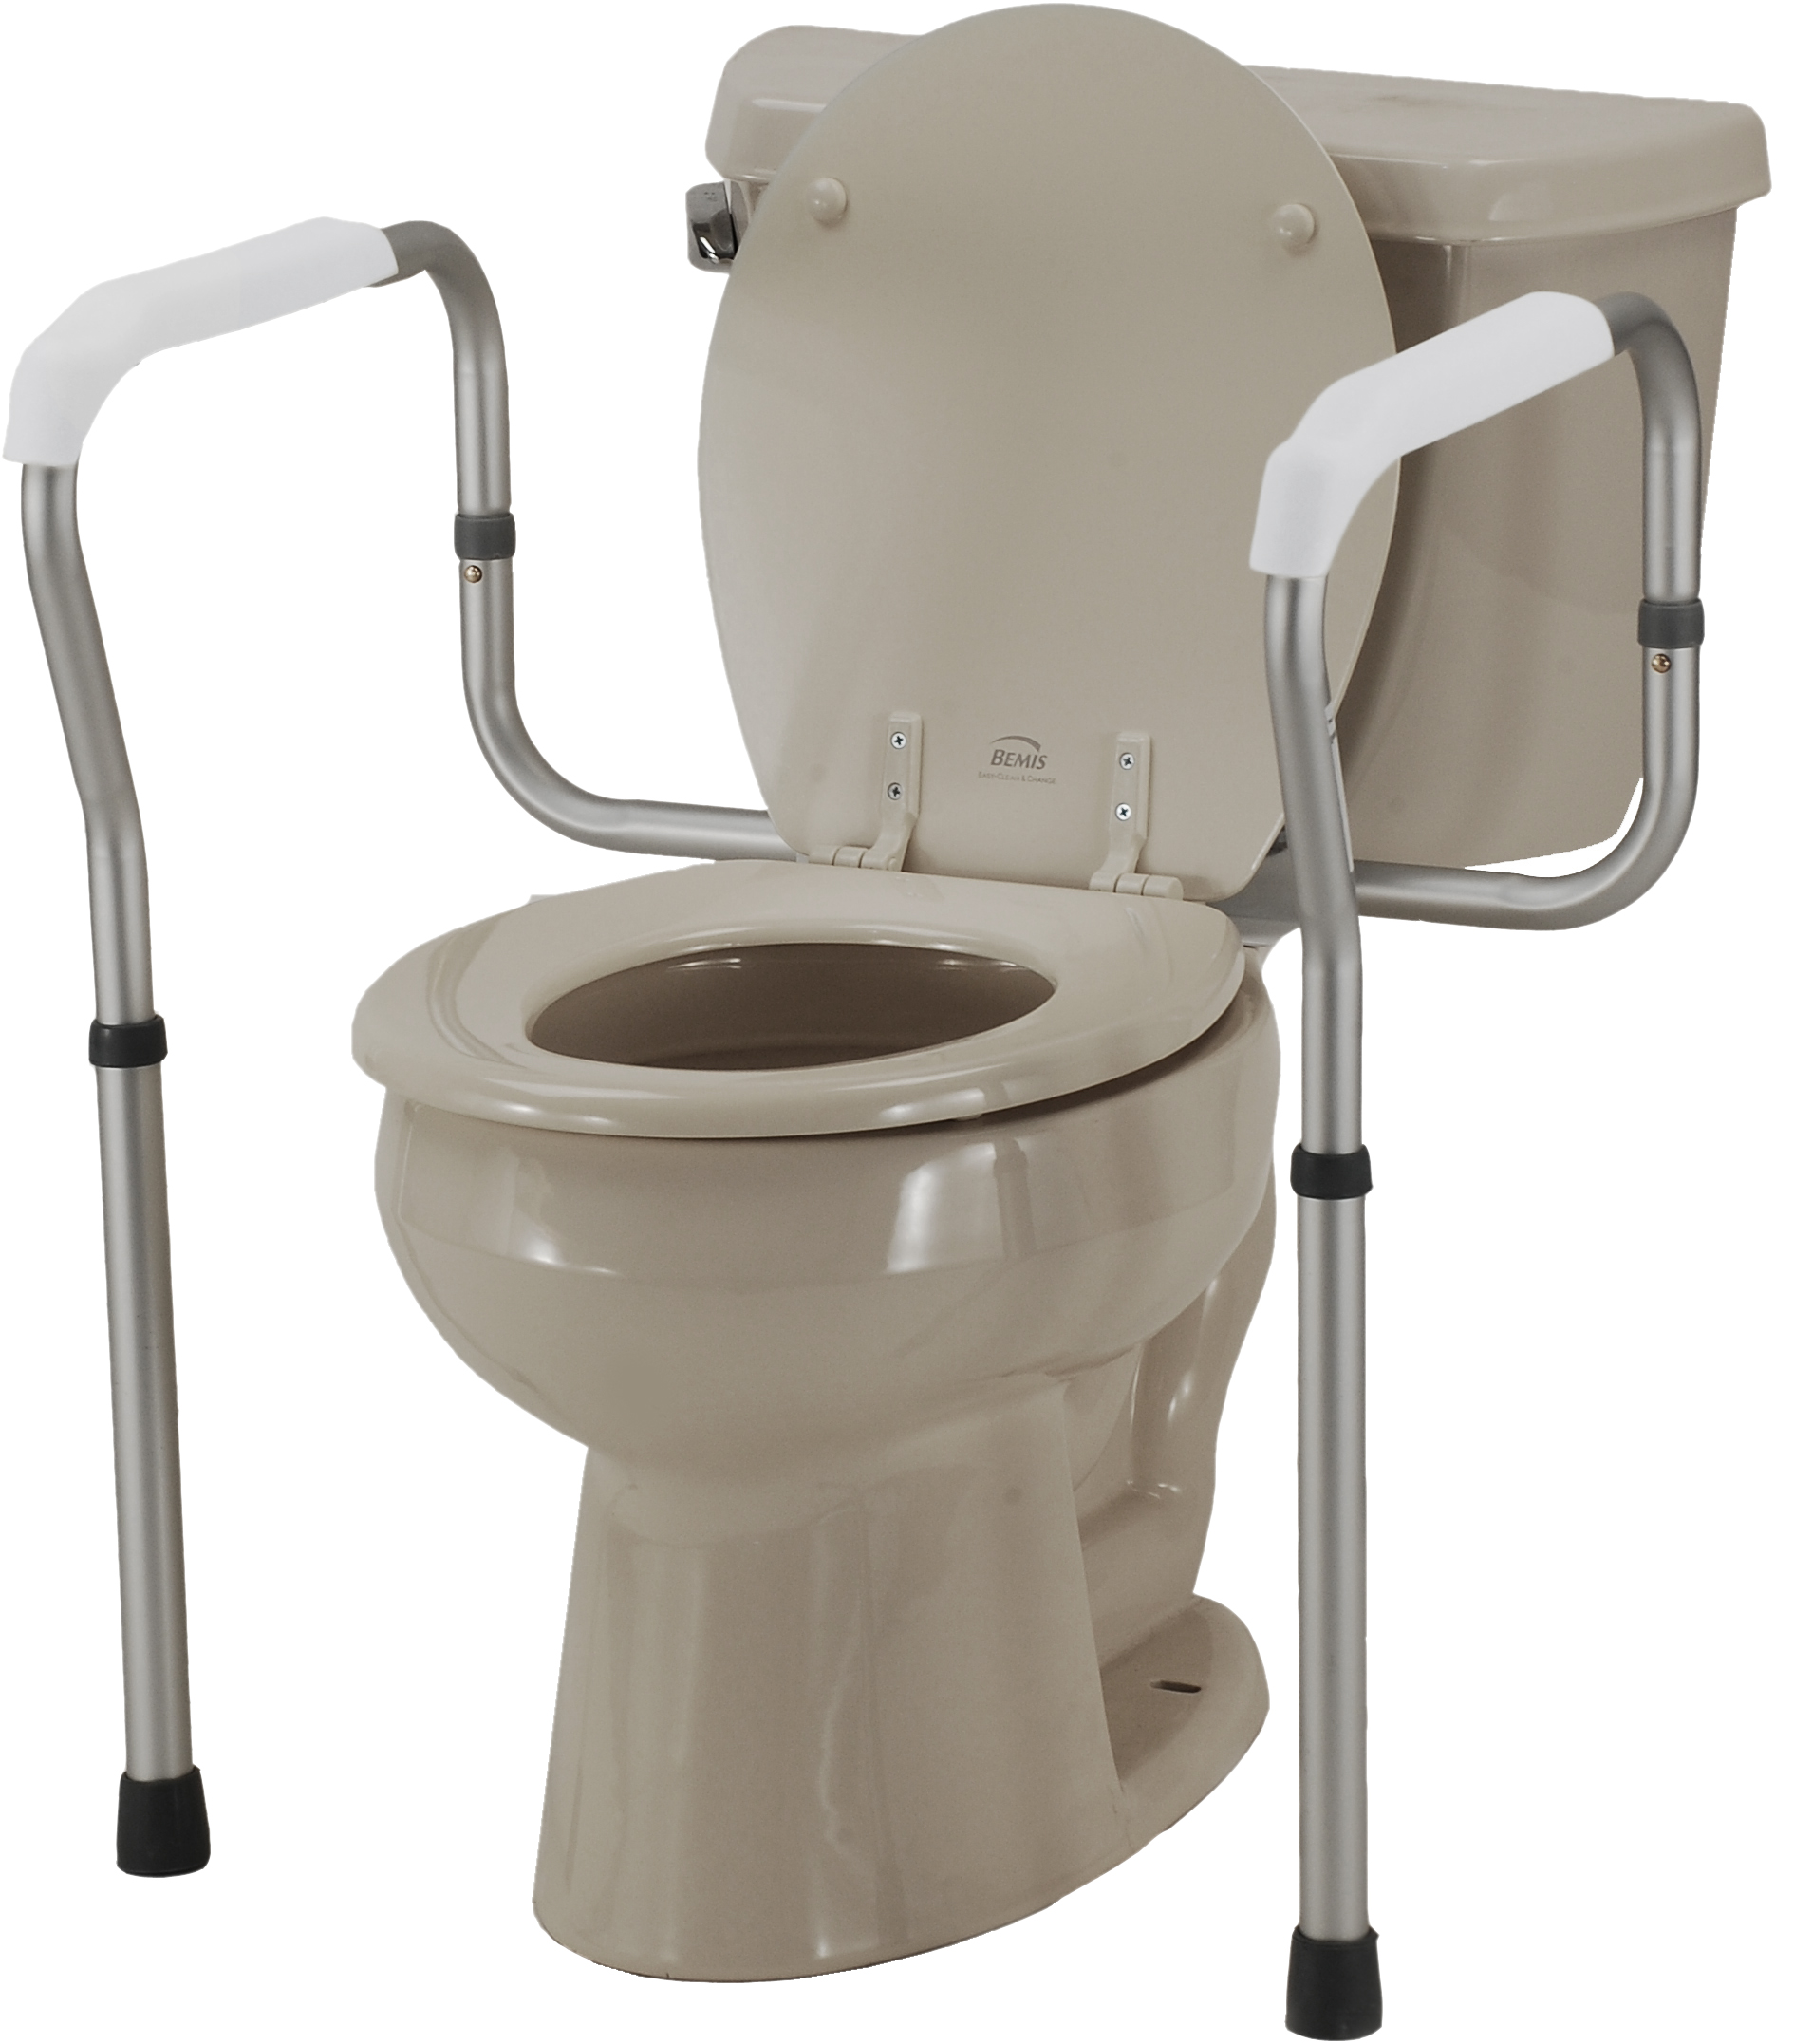 Affordable Medical Supply Bathroom Safety